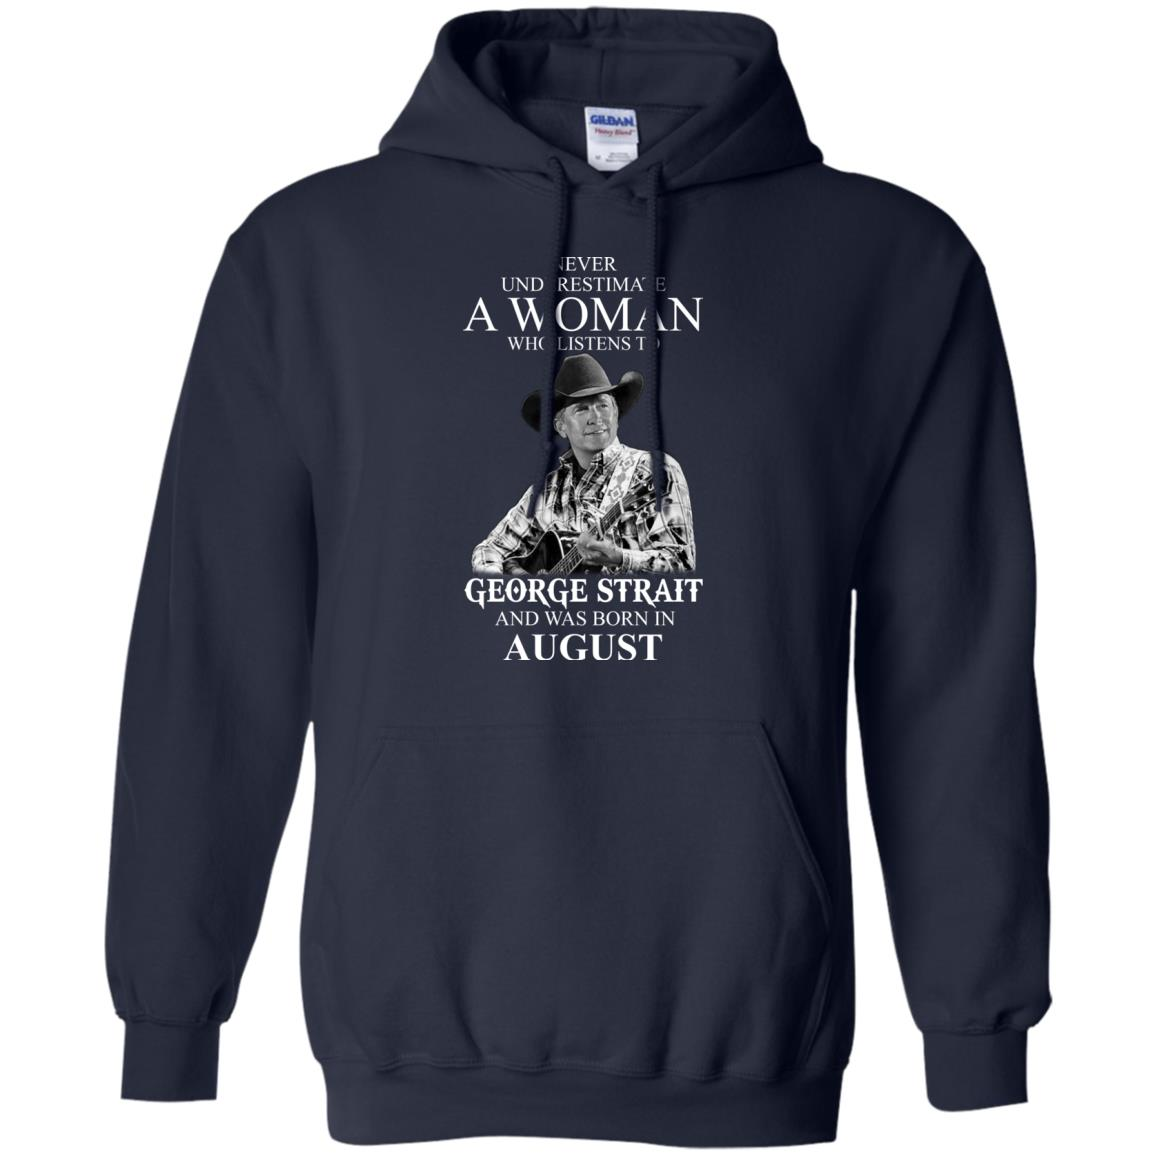 image 391 - Never Underestimate A Woman Who Listens To George Strait And Was Born In August shirt